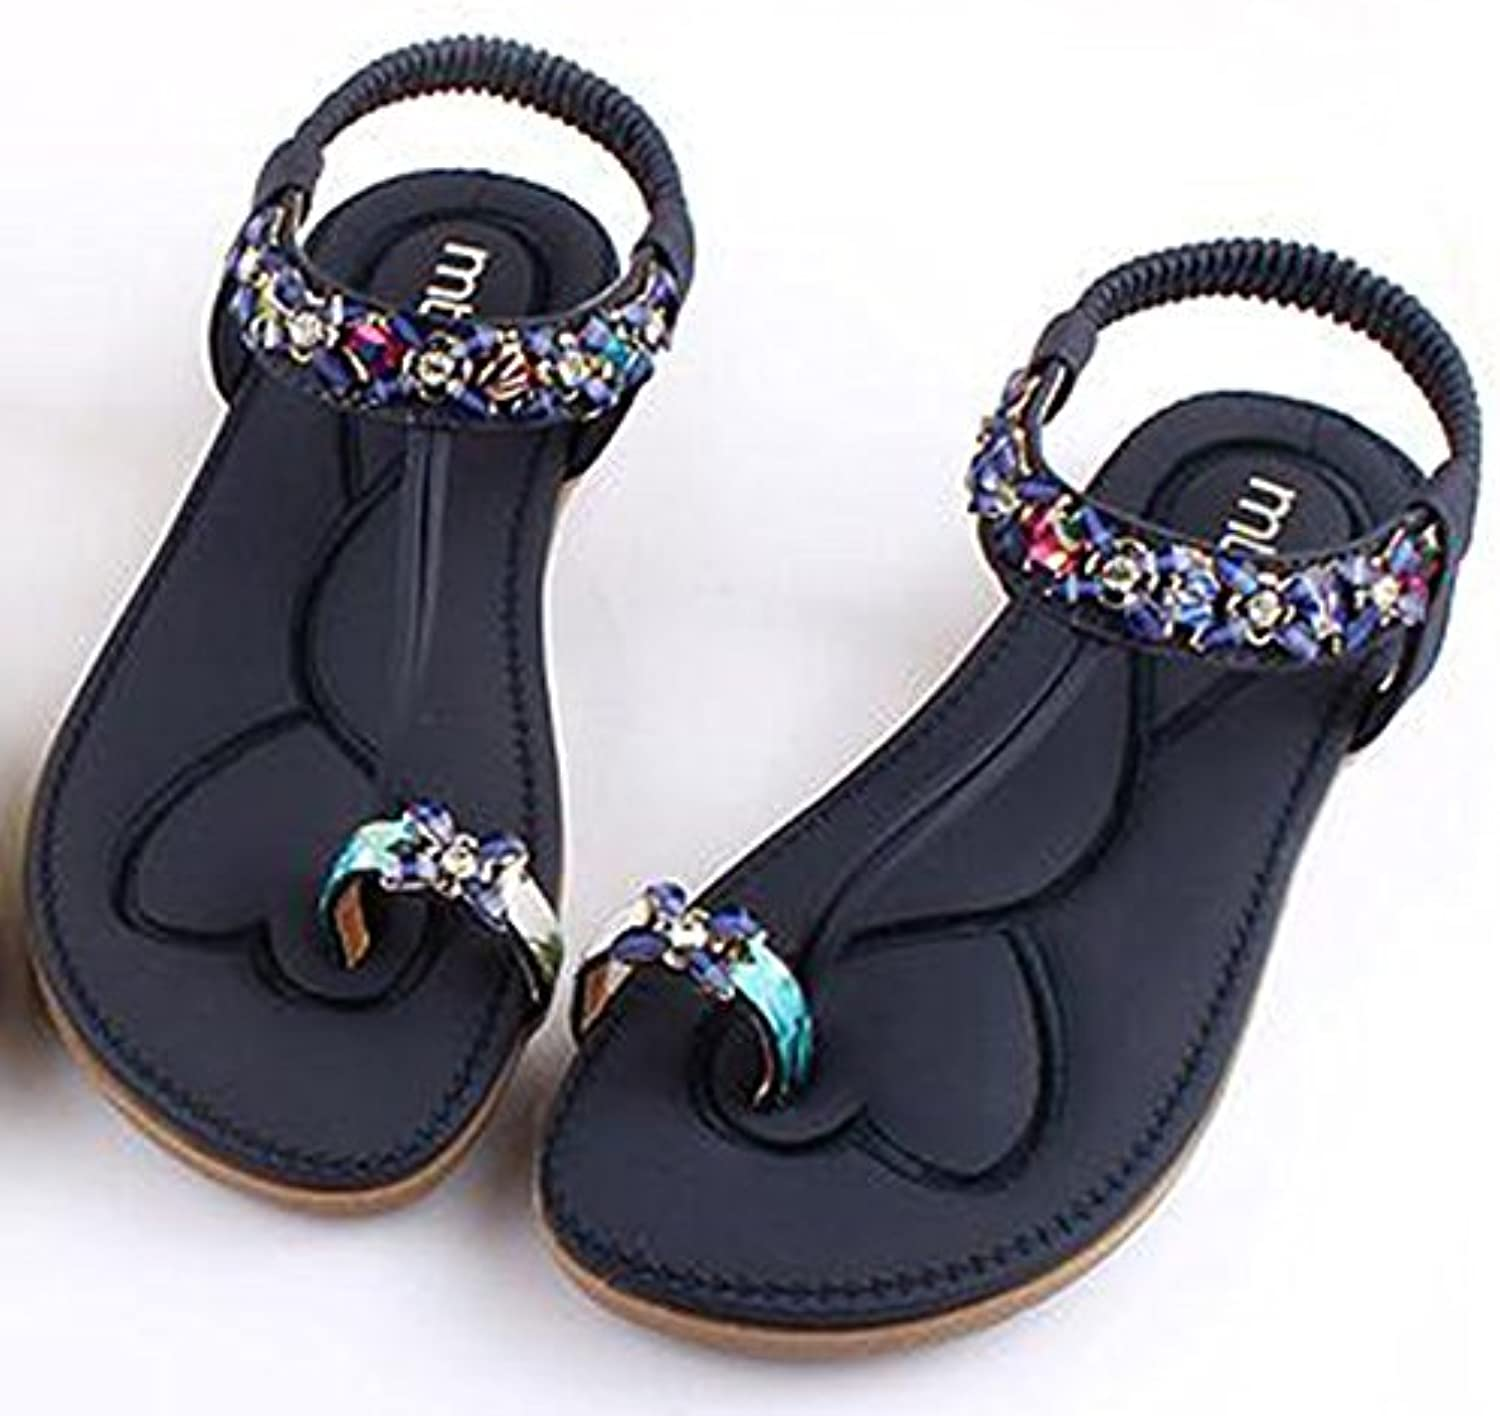 XIAOLIN Summer Soft Bottom Sexy Diamond Fashion Set Sandalias de pie Cómodo Beach Retro Sandalias de los zapatos...